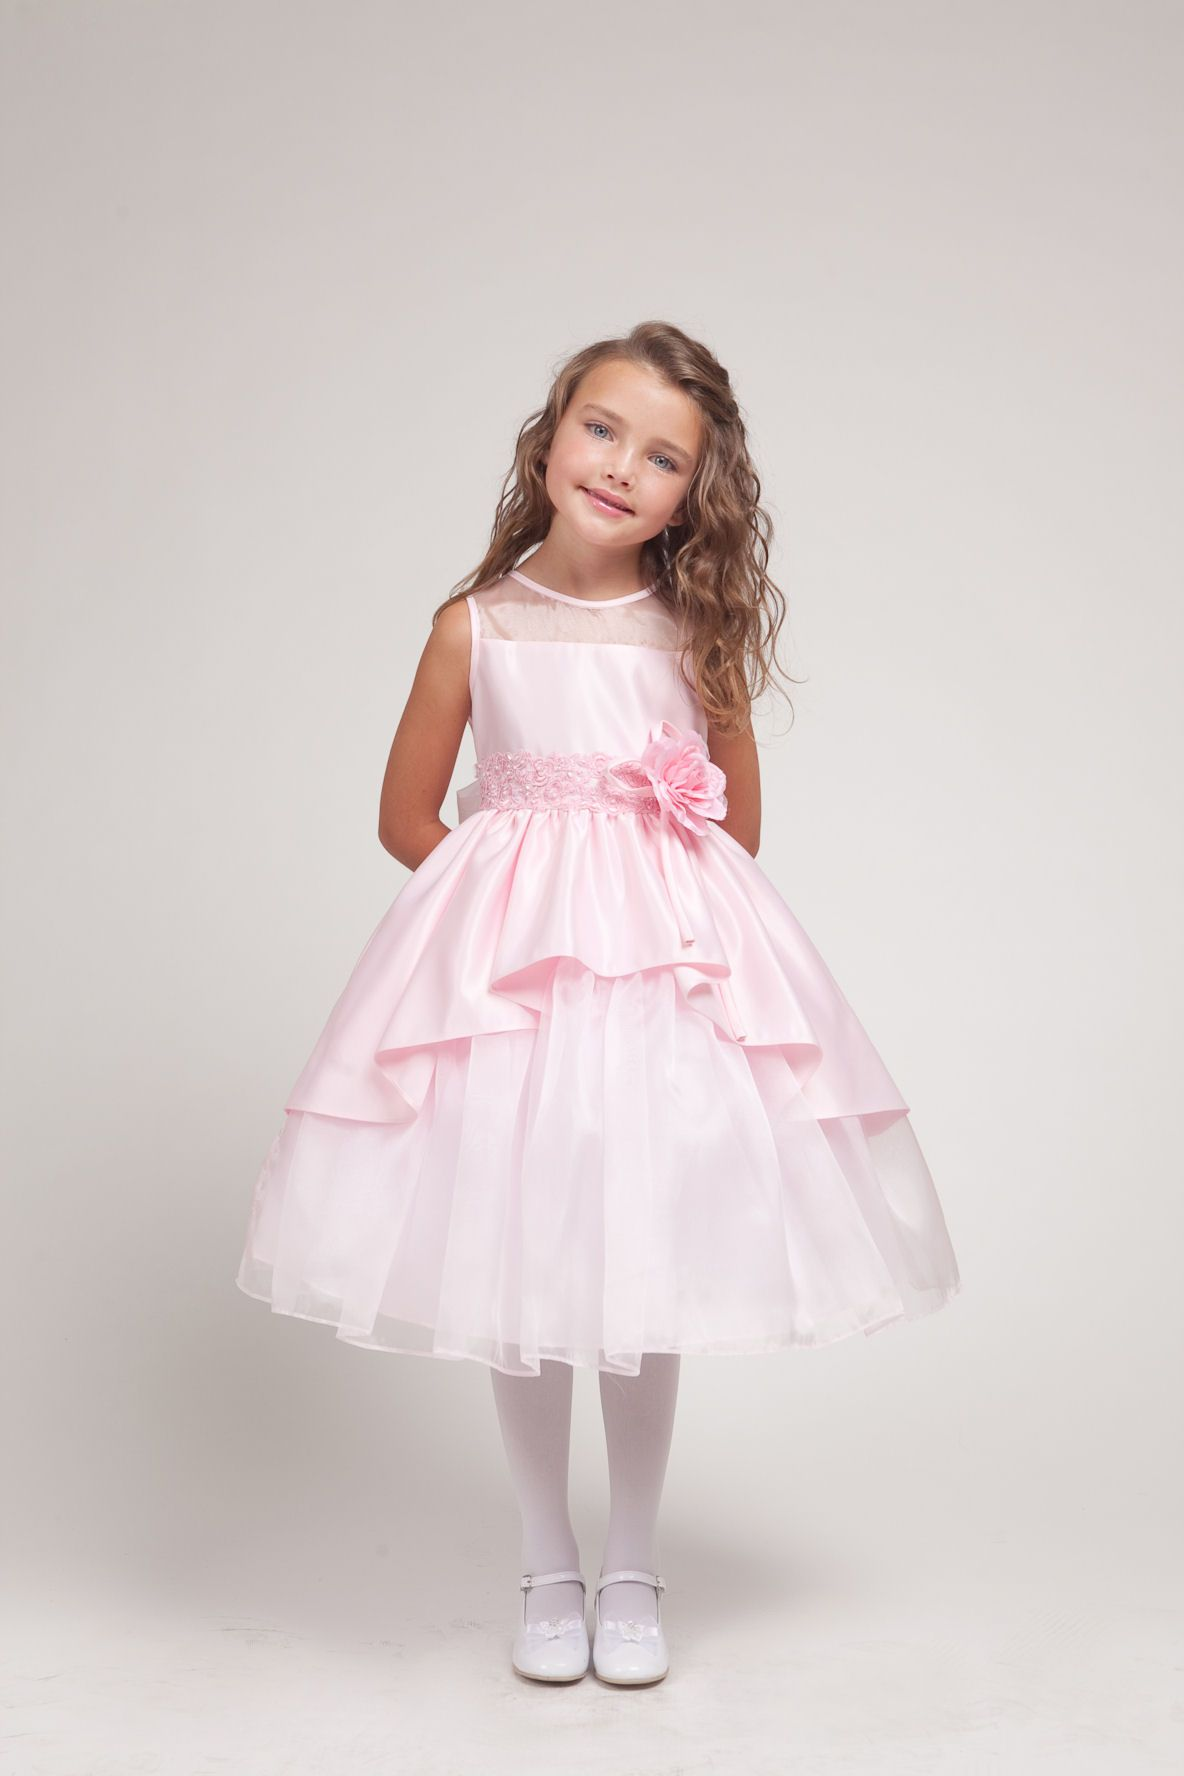 Pink flower girl dresses uk wallpaper bello vestido para ponerse pink flower girl dresses ombrellifo Gallery